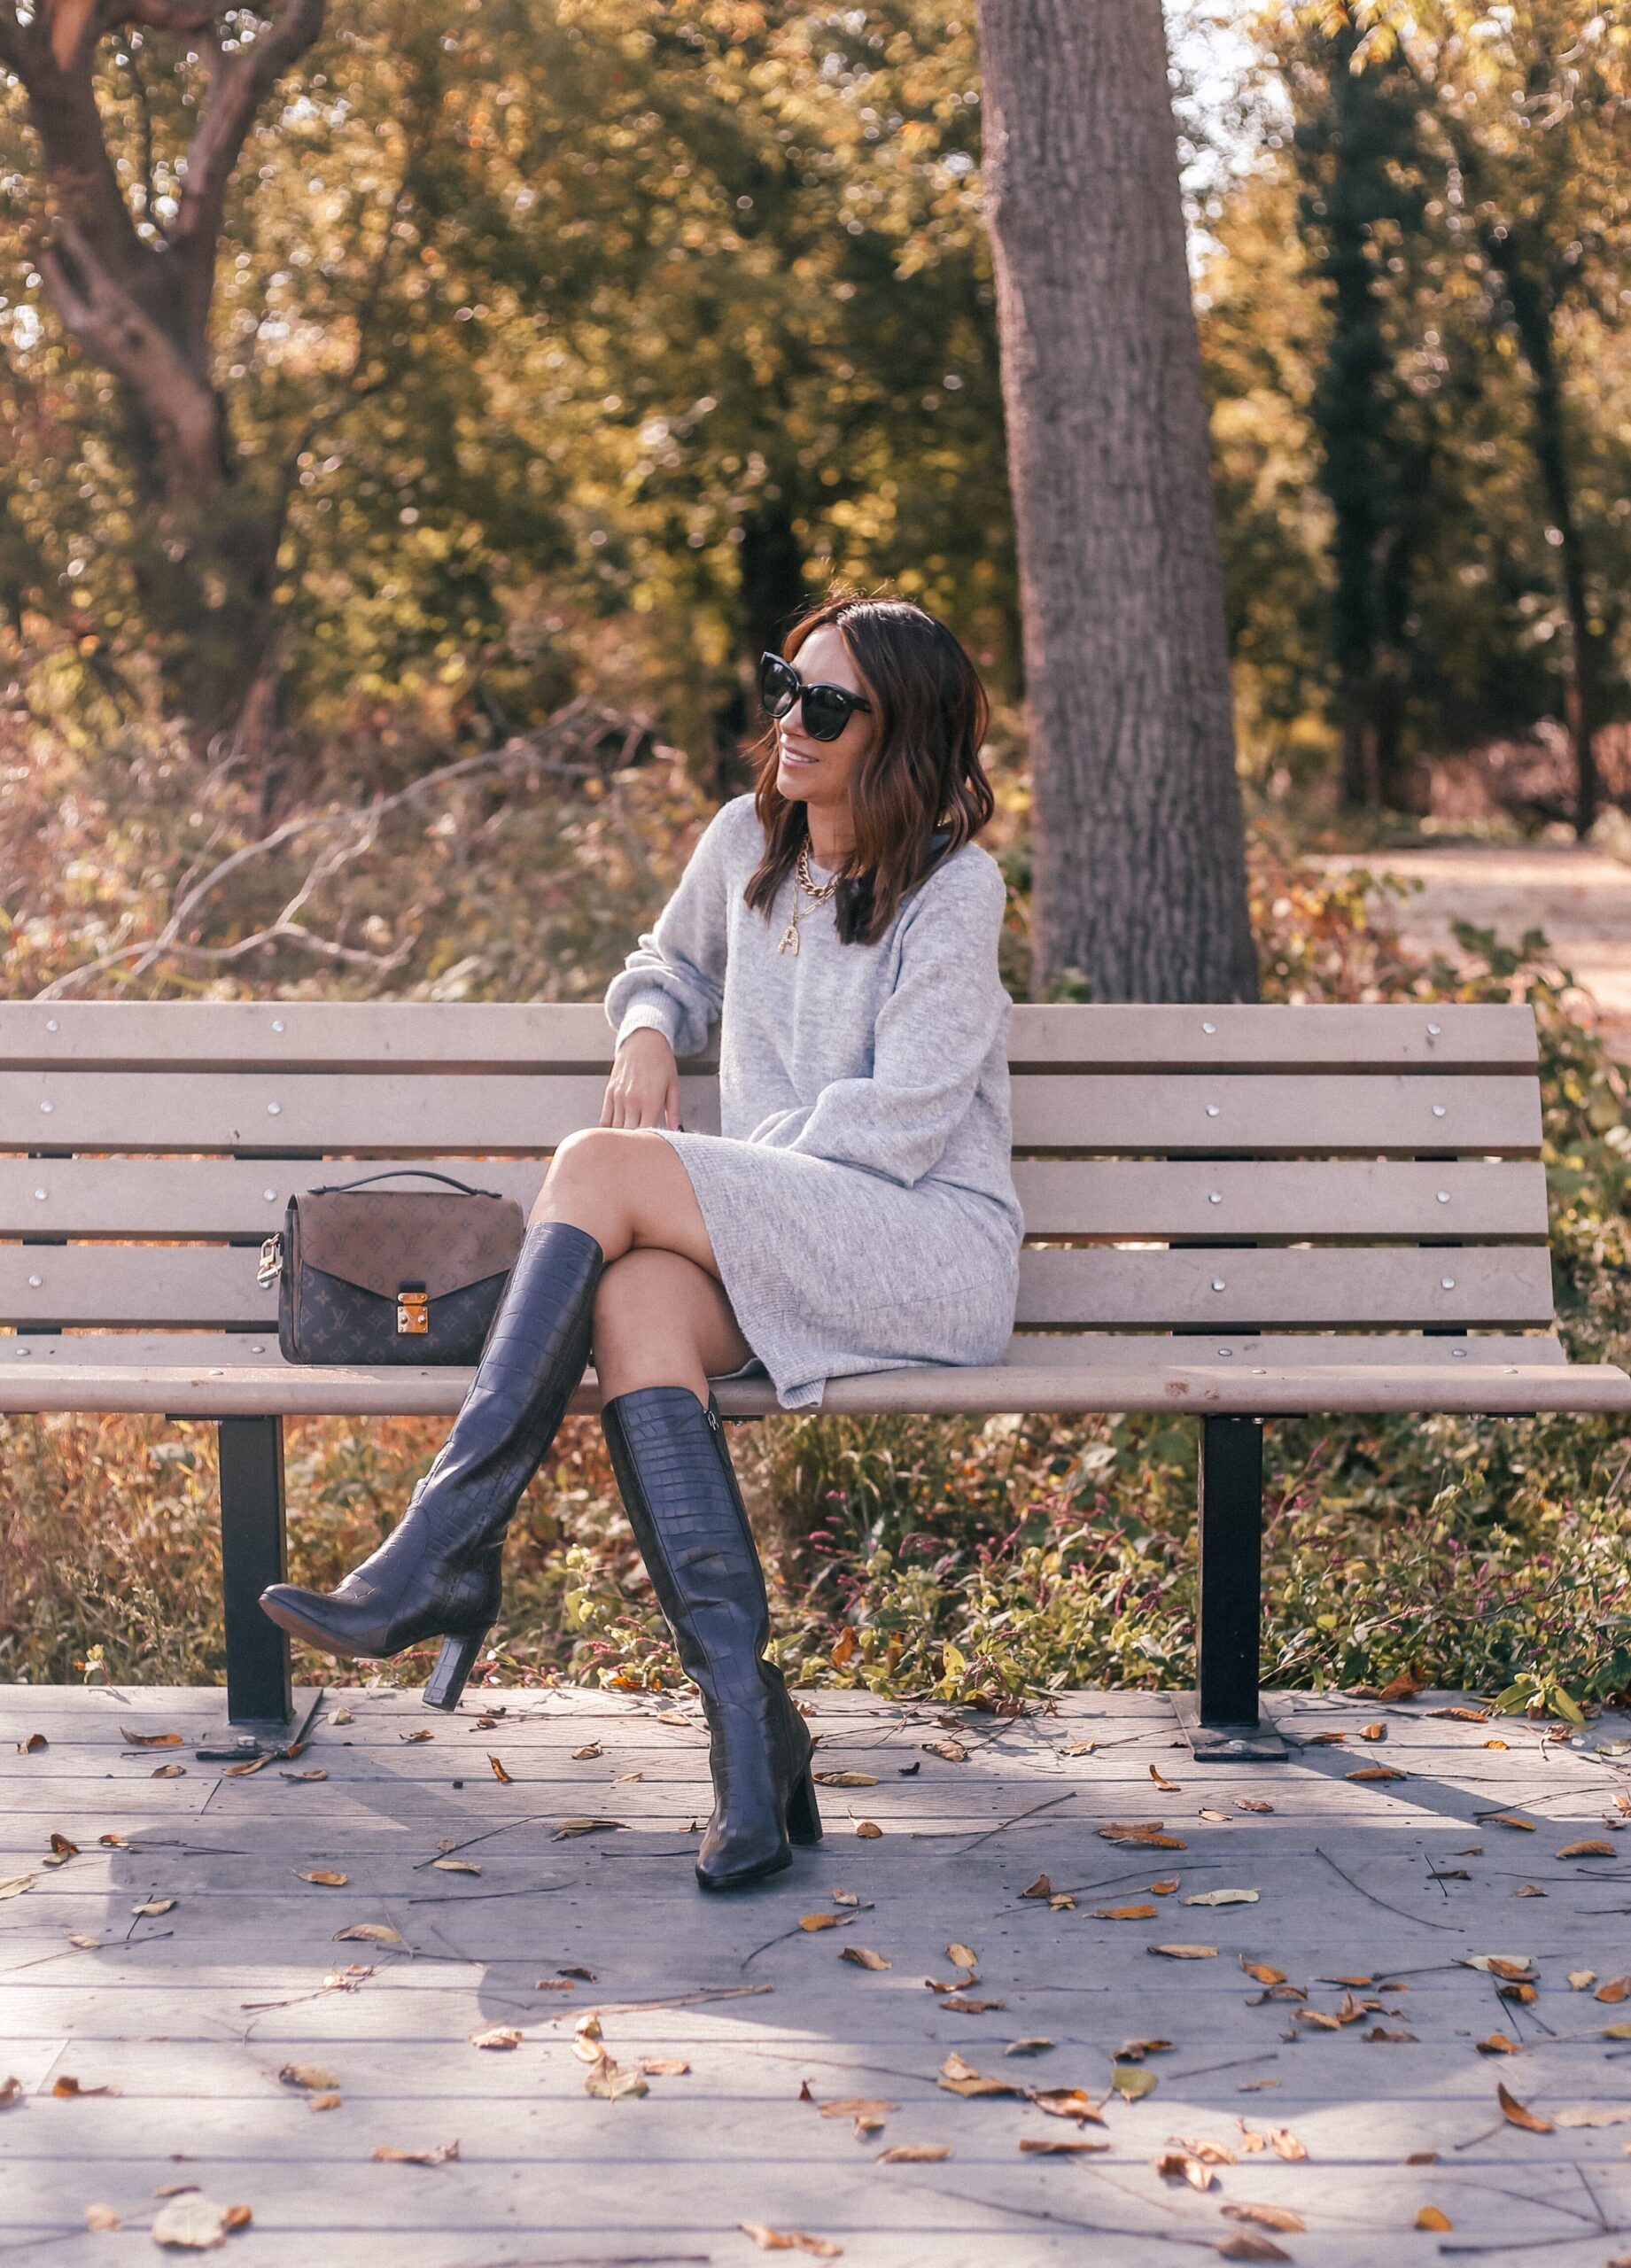 sweater dress, fall outfit ideas, knee high boots